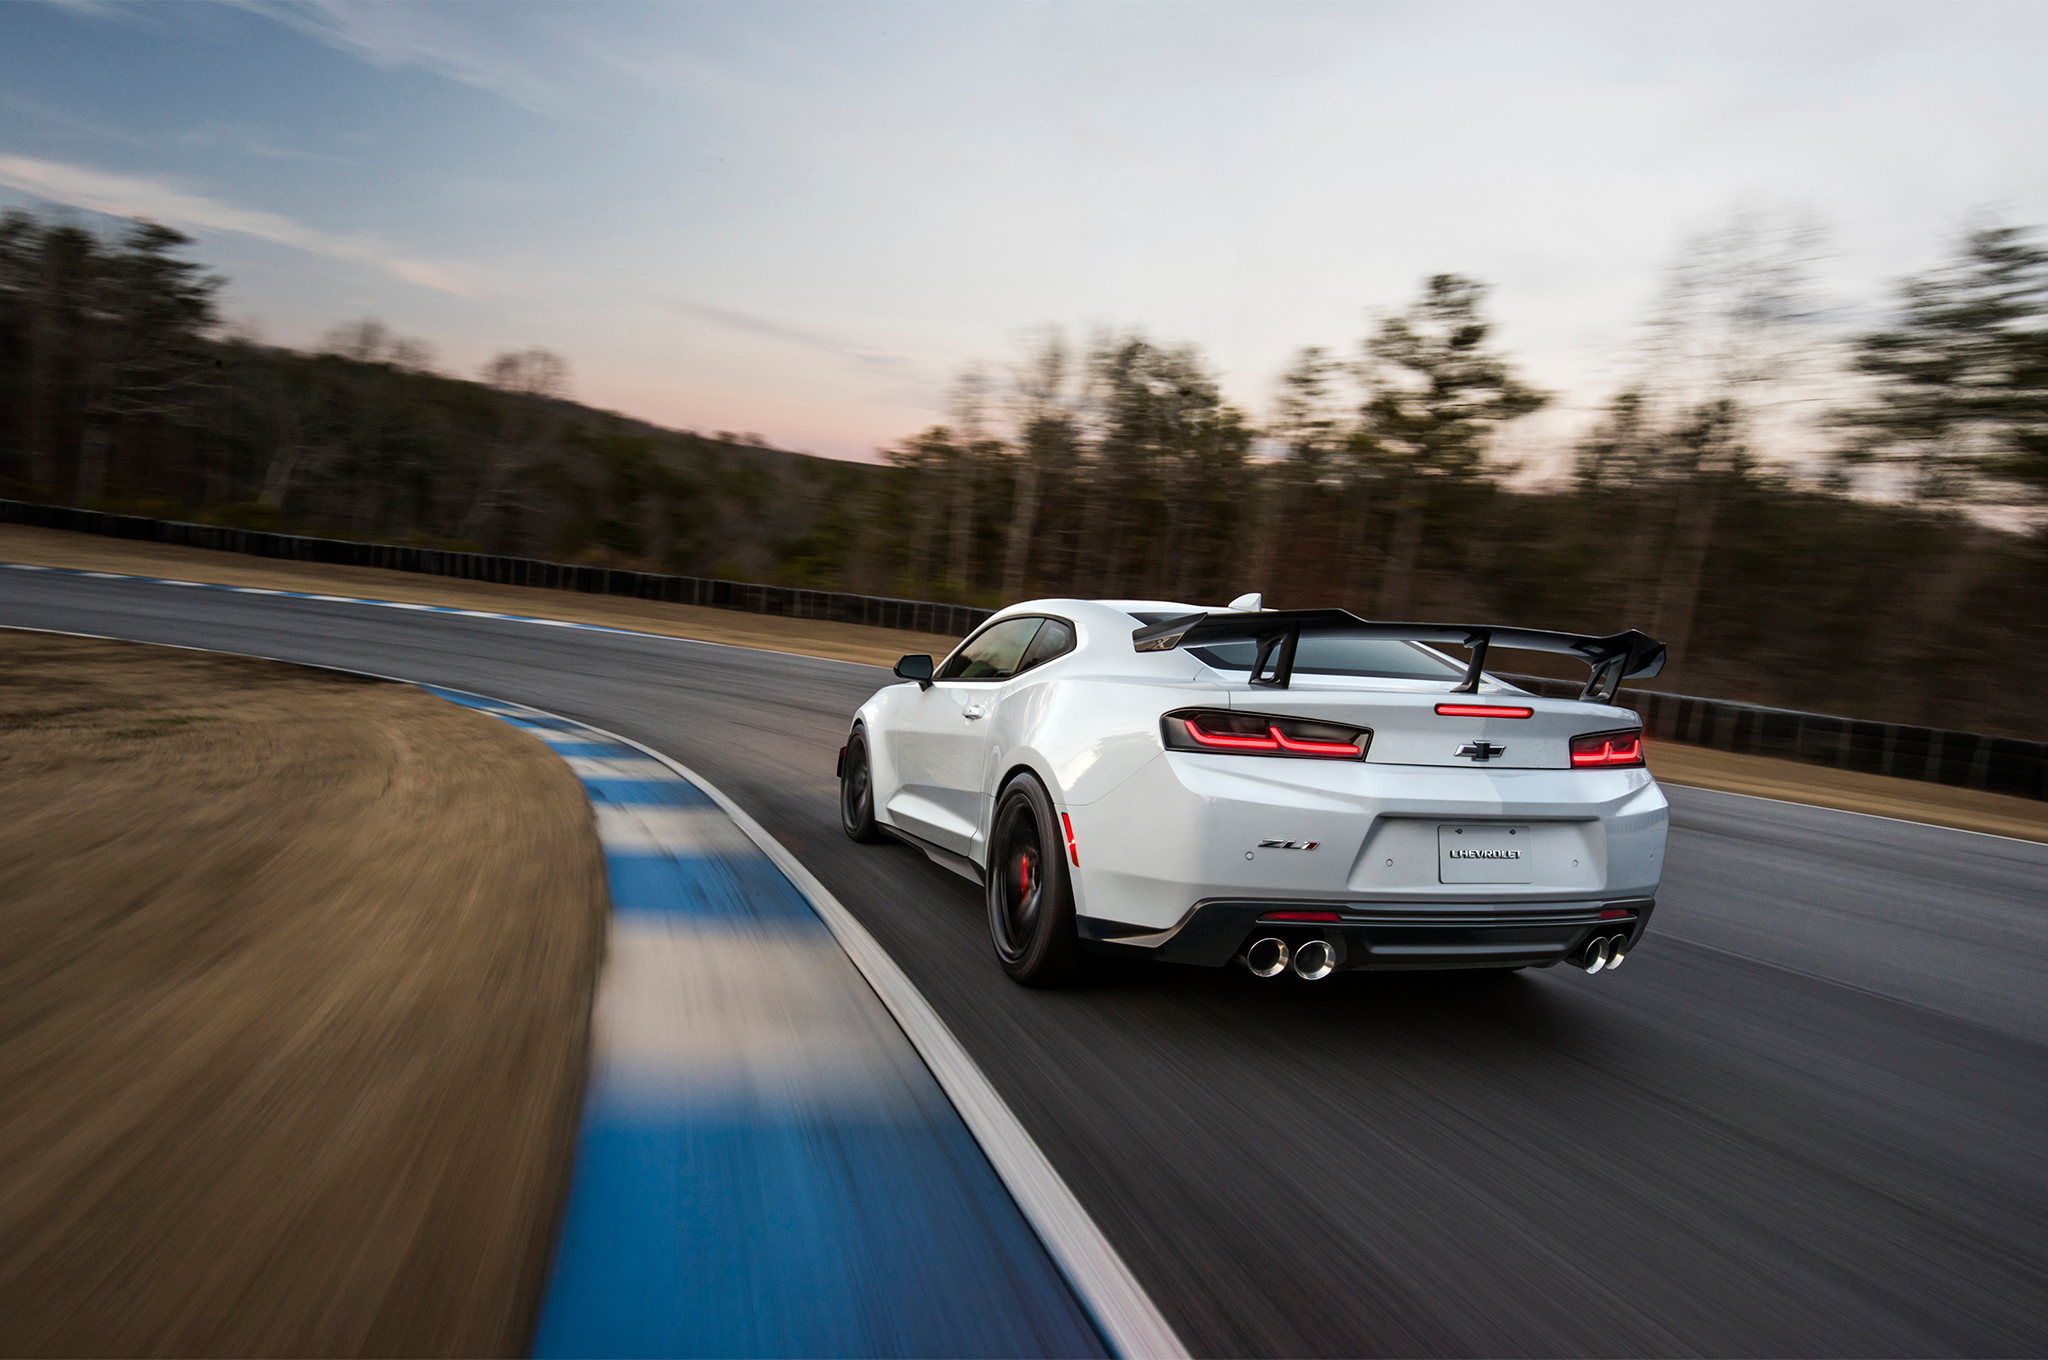 2018-Chevrolet-Camaro-ZL1-1LE-rear-three-quarter-in-motion